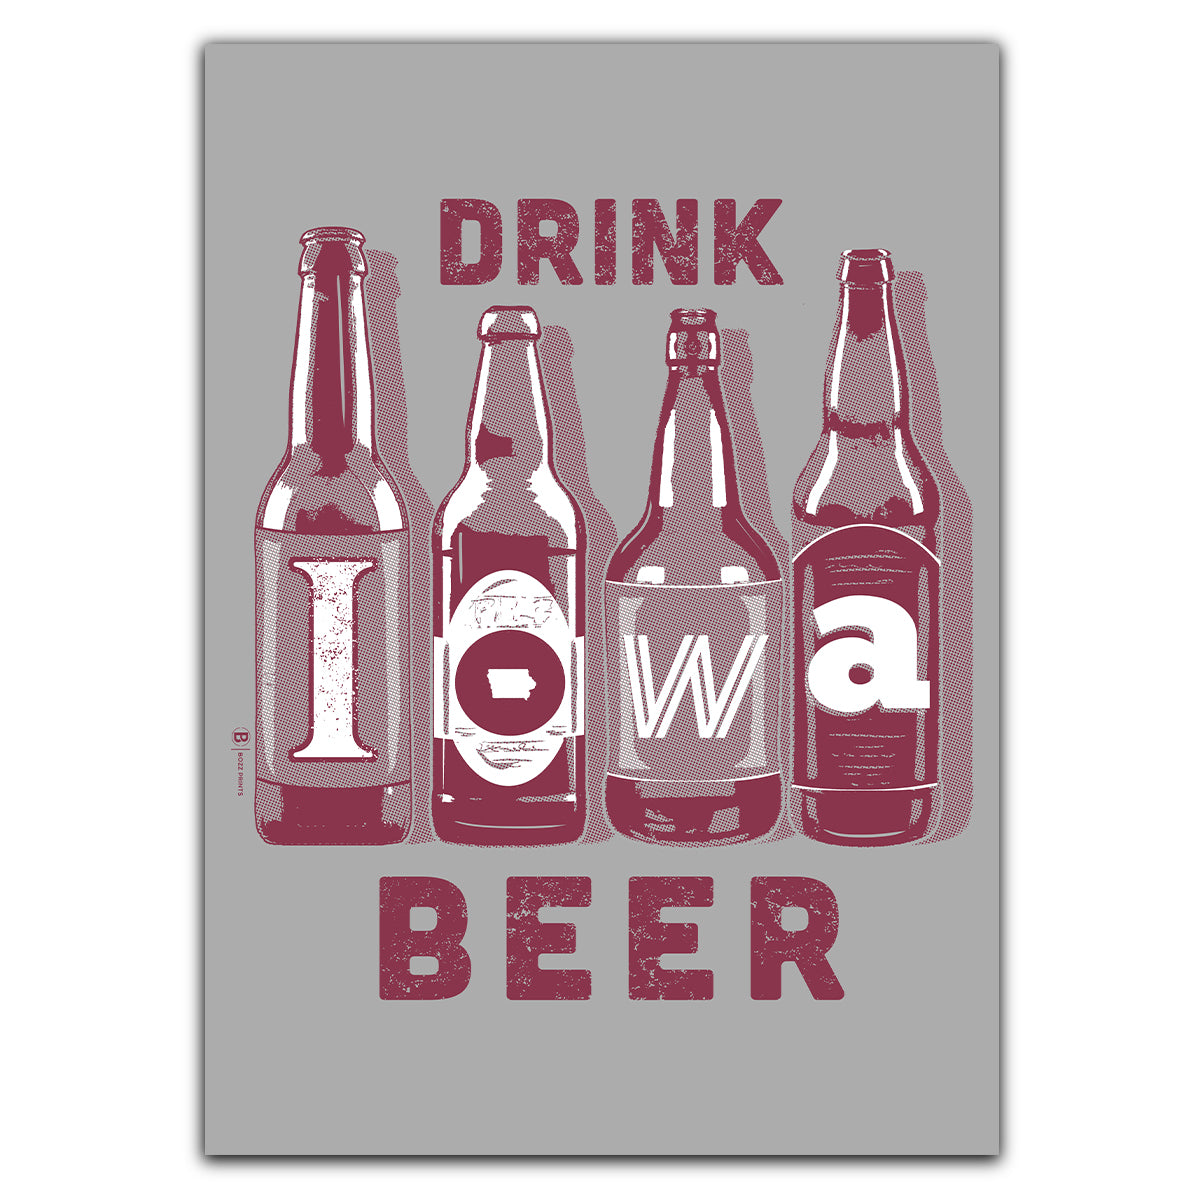 Drink Iowa Beer Greeting Card